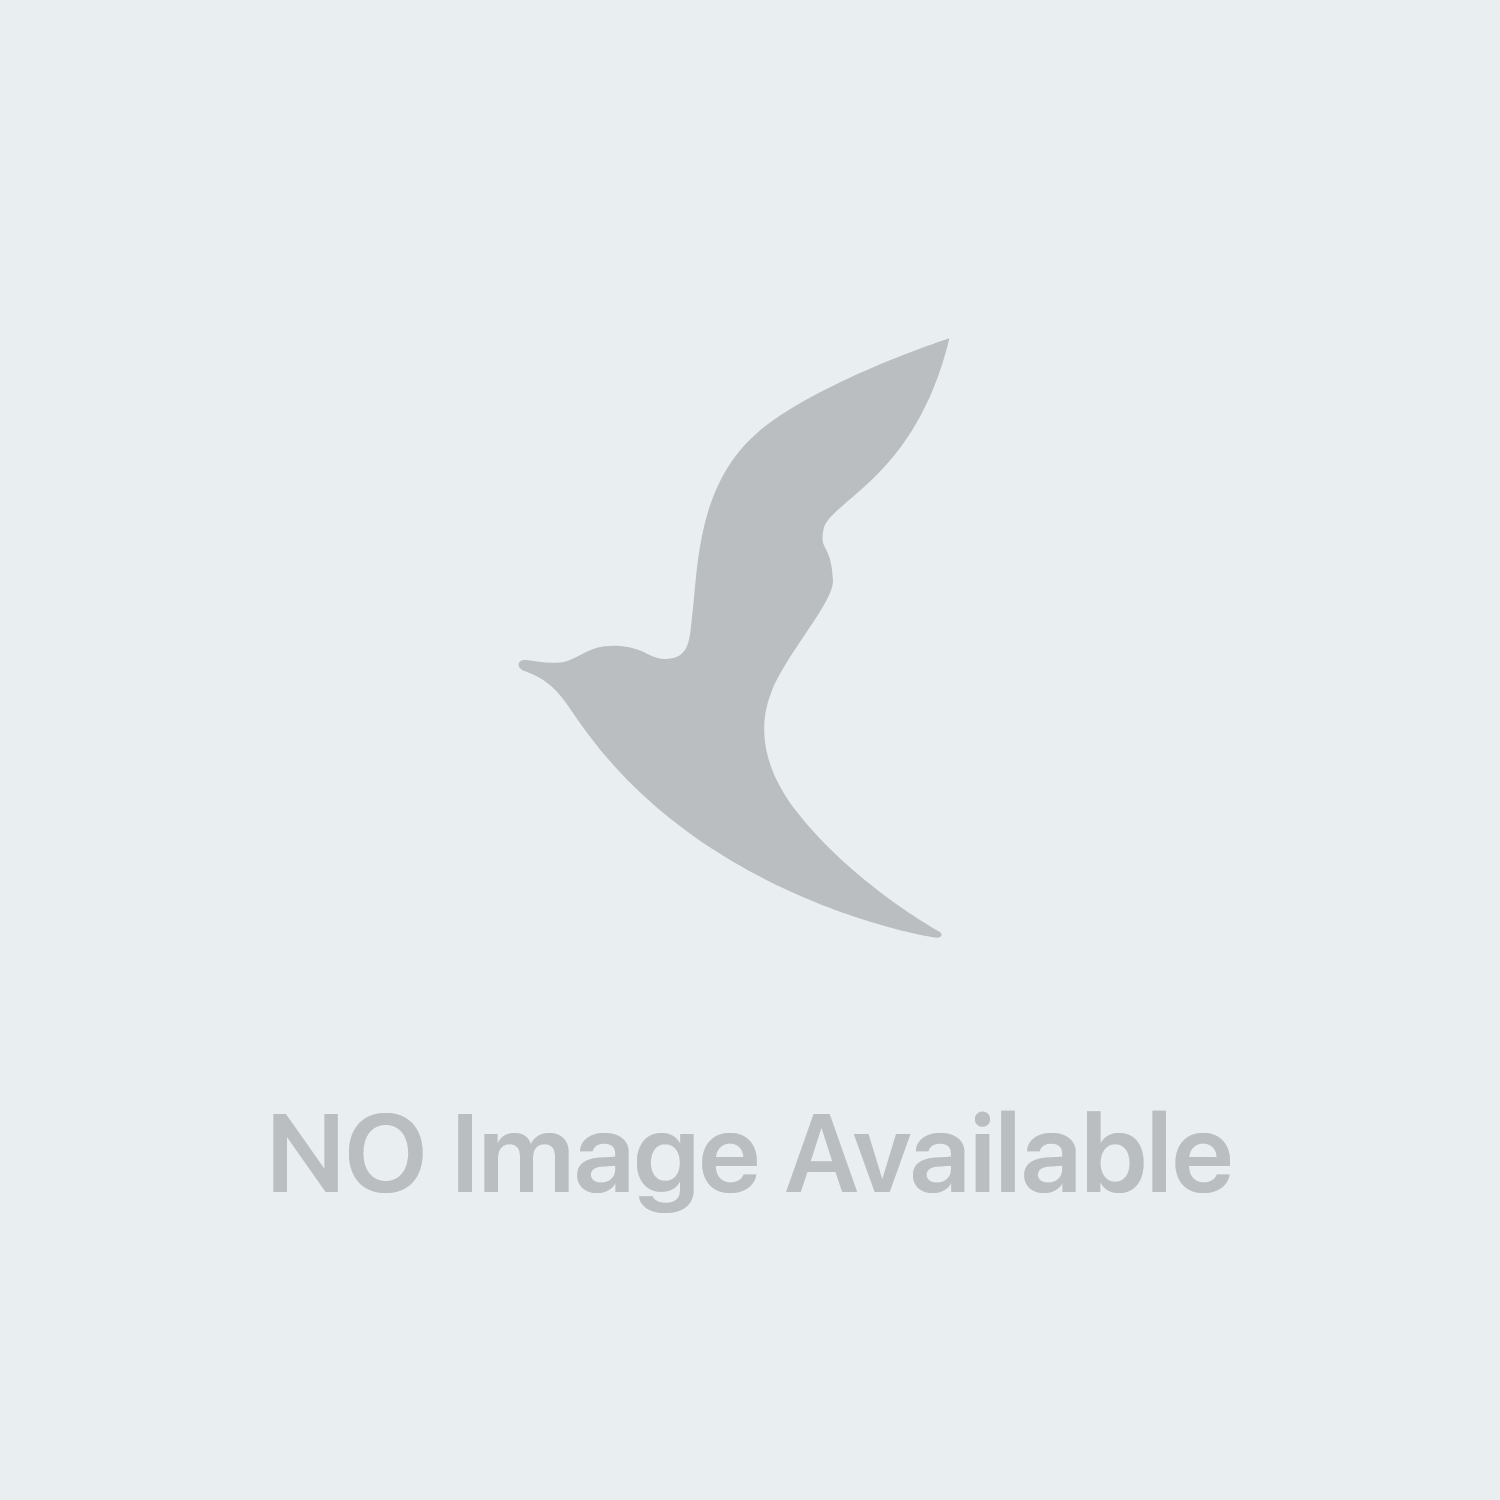 Effipro Spot-On Antiparassitario Cani Taglia Gigante 40-60 Kg 402 mg 4 Pipette